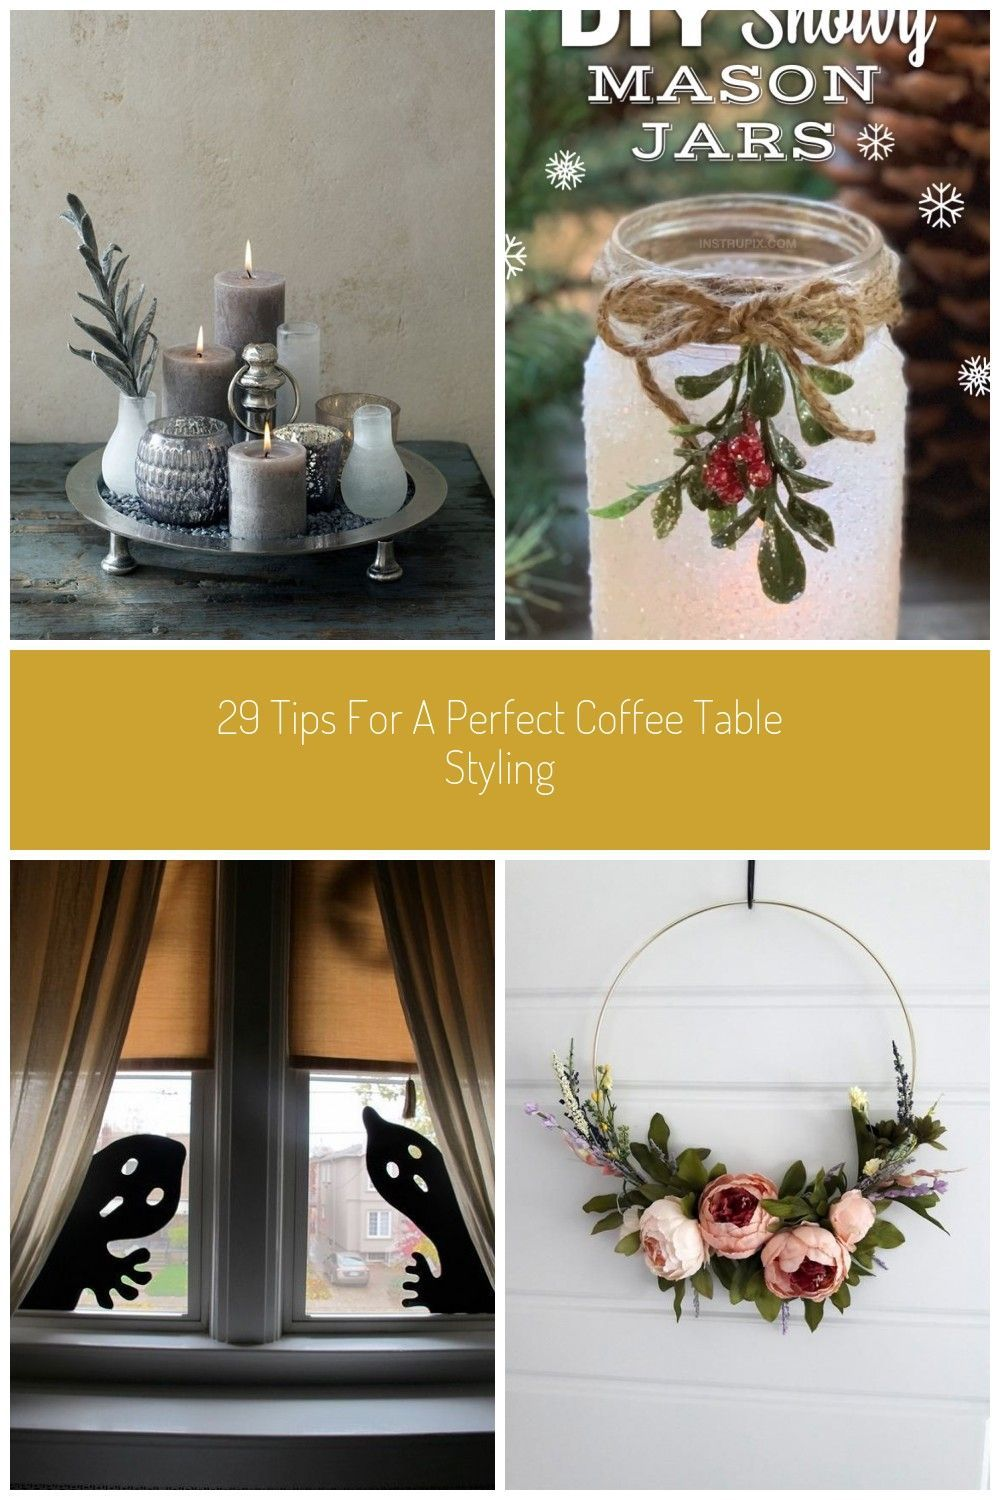 Romantic Cozy Coffee Table Decor Ideas Decoration For Home 29 Tips For A Perf In 2020 Decoration Ideen Ideen Creative